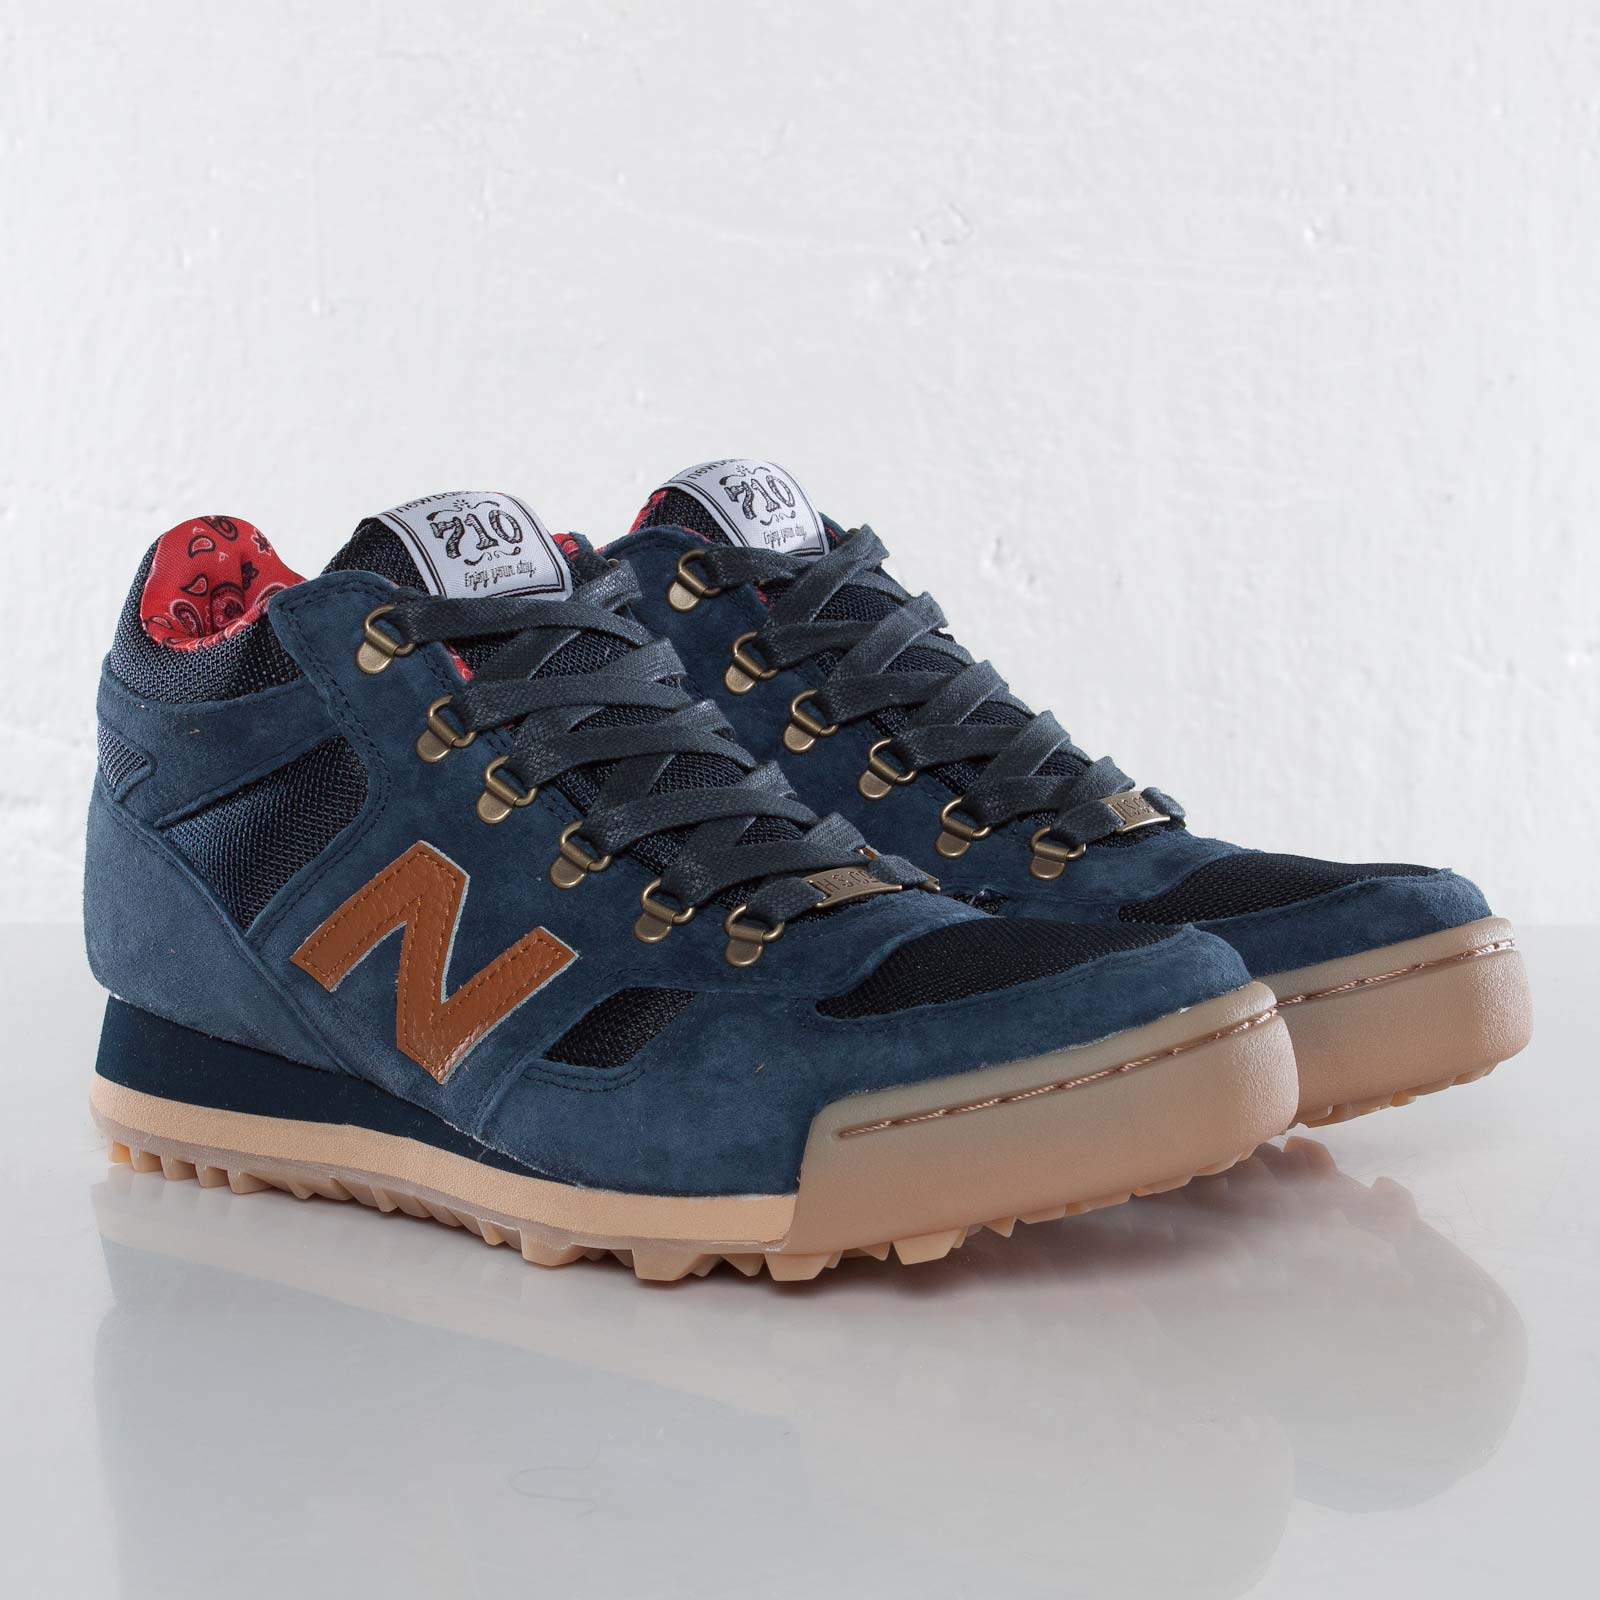 plus récent 8bcb7 38be7 New Balance H710 - H710hsn - Sneakersnstuff | sneakers ...